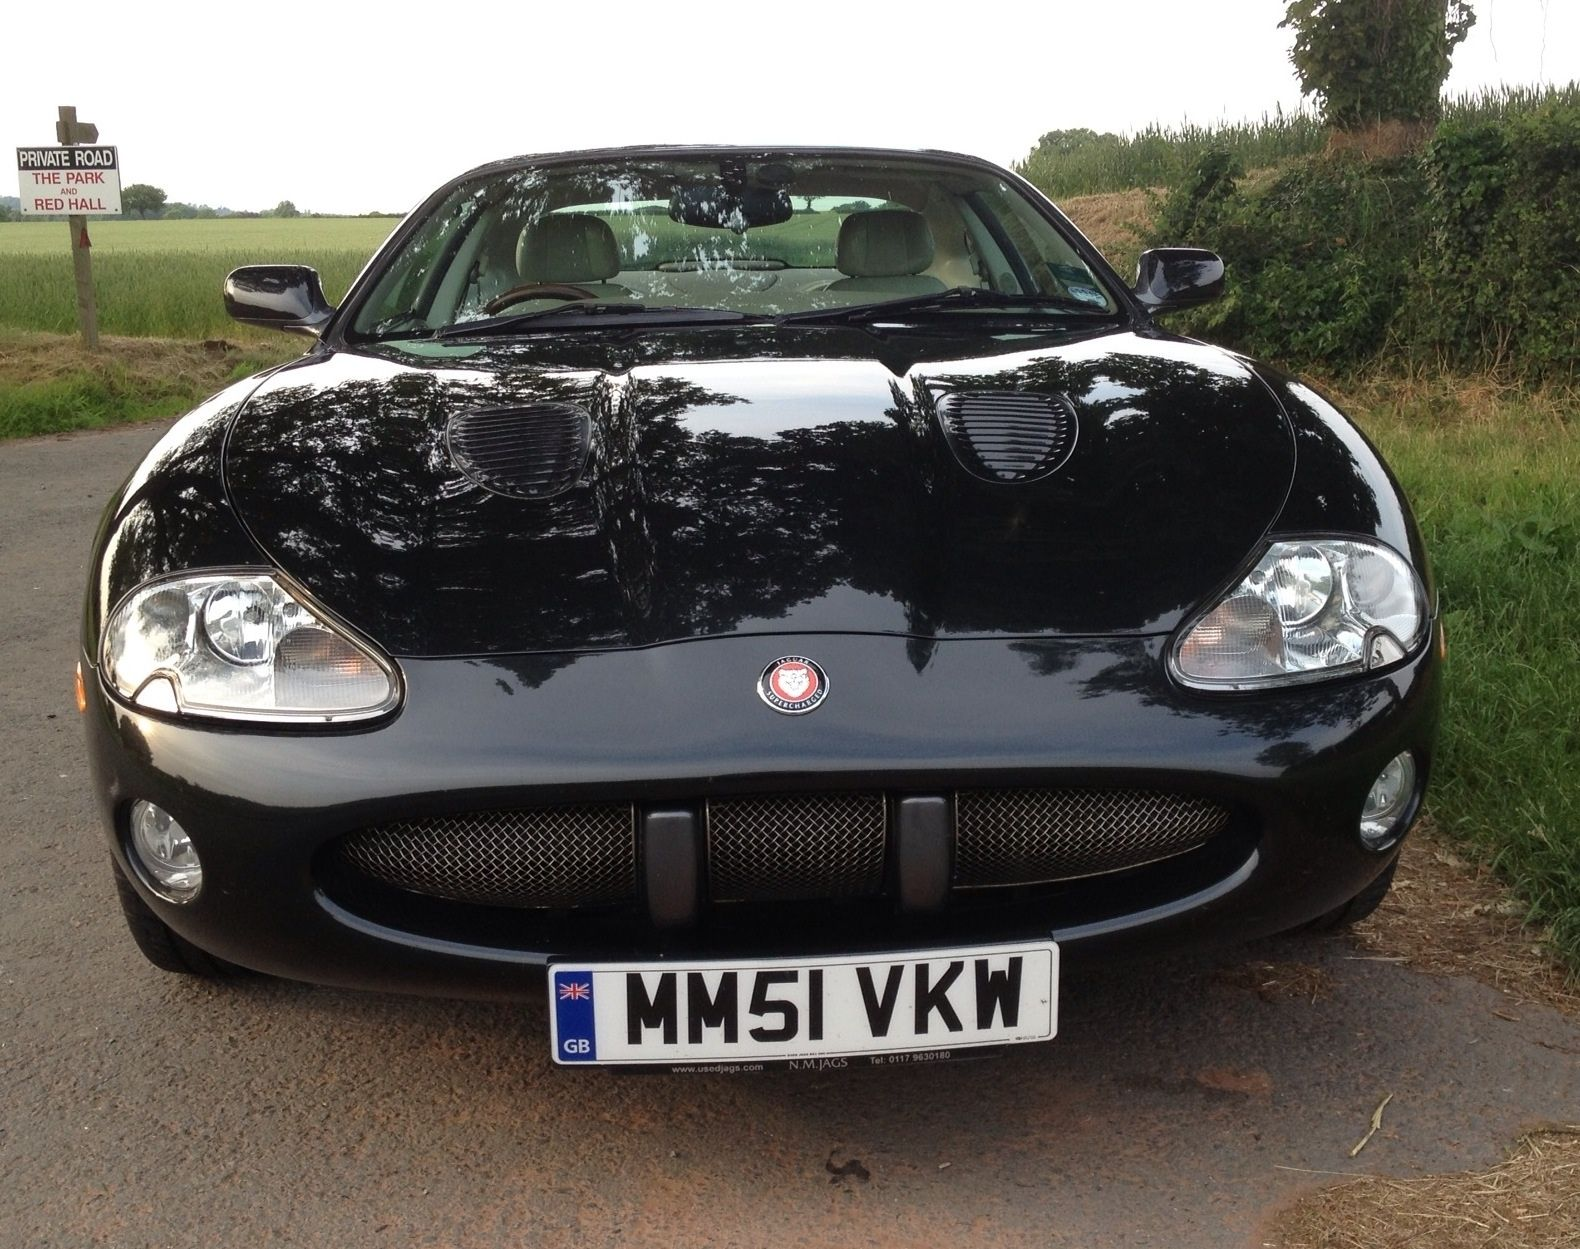 1999 jaguar xk8 body parts diagram on removing front headlight rh pinterest com 2010 Jaguar Cars 2010 Jaguar Cars